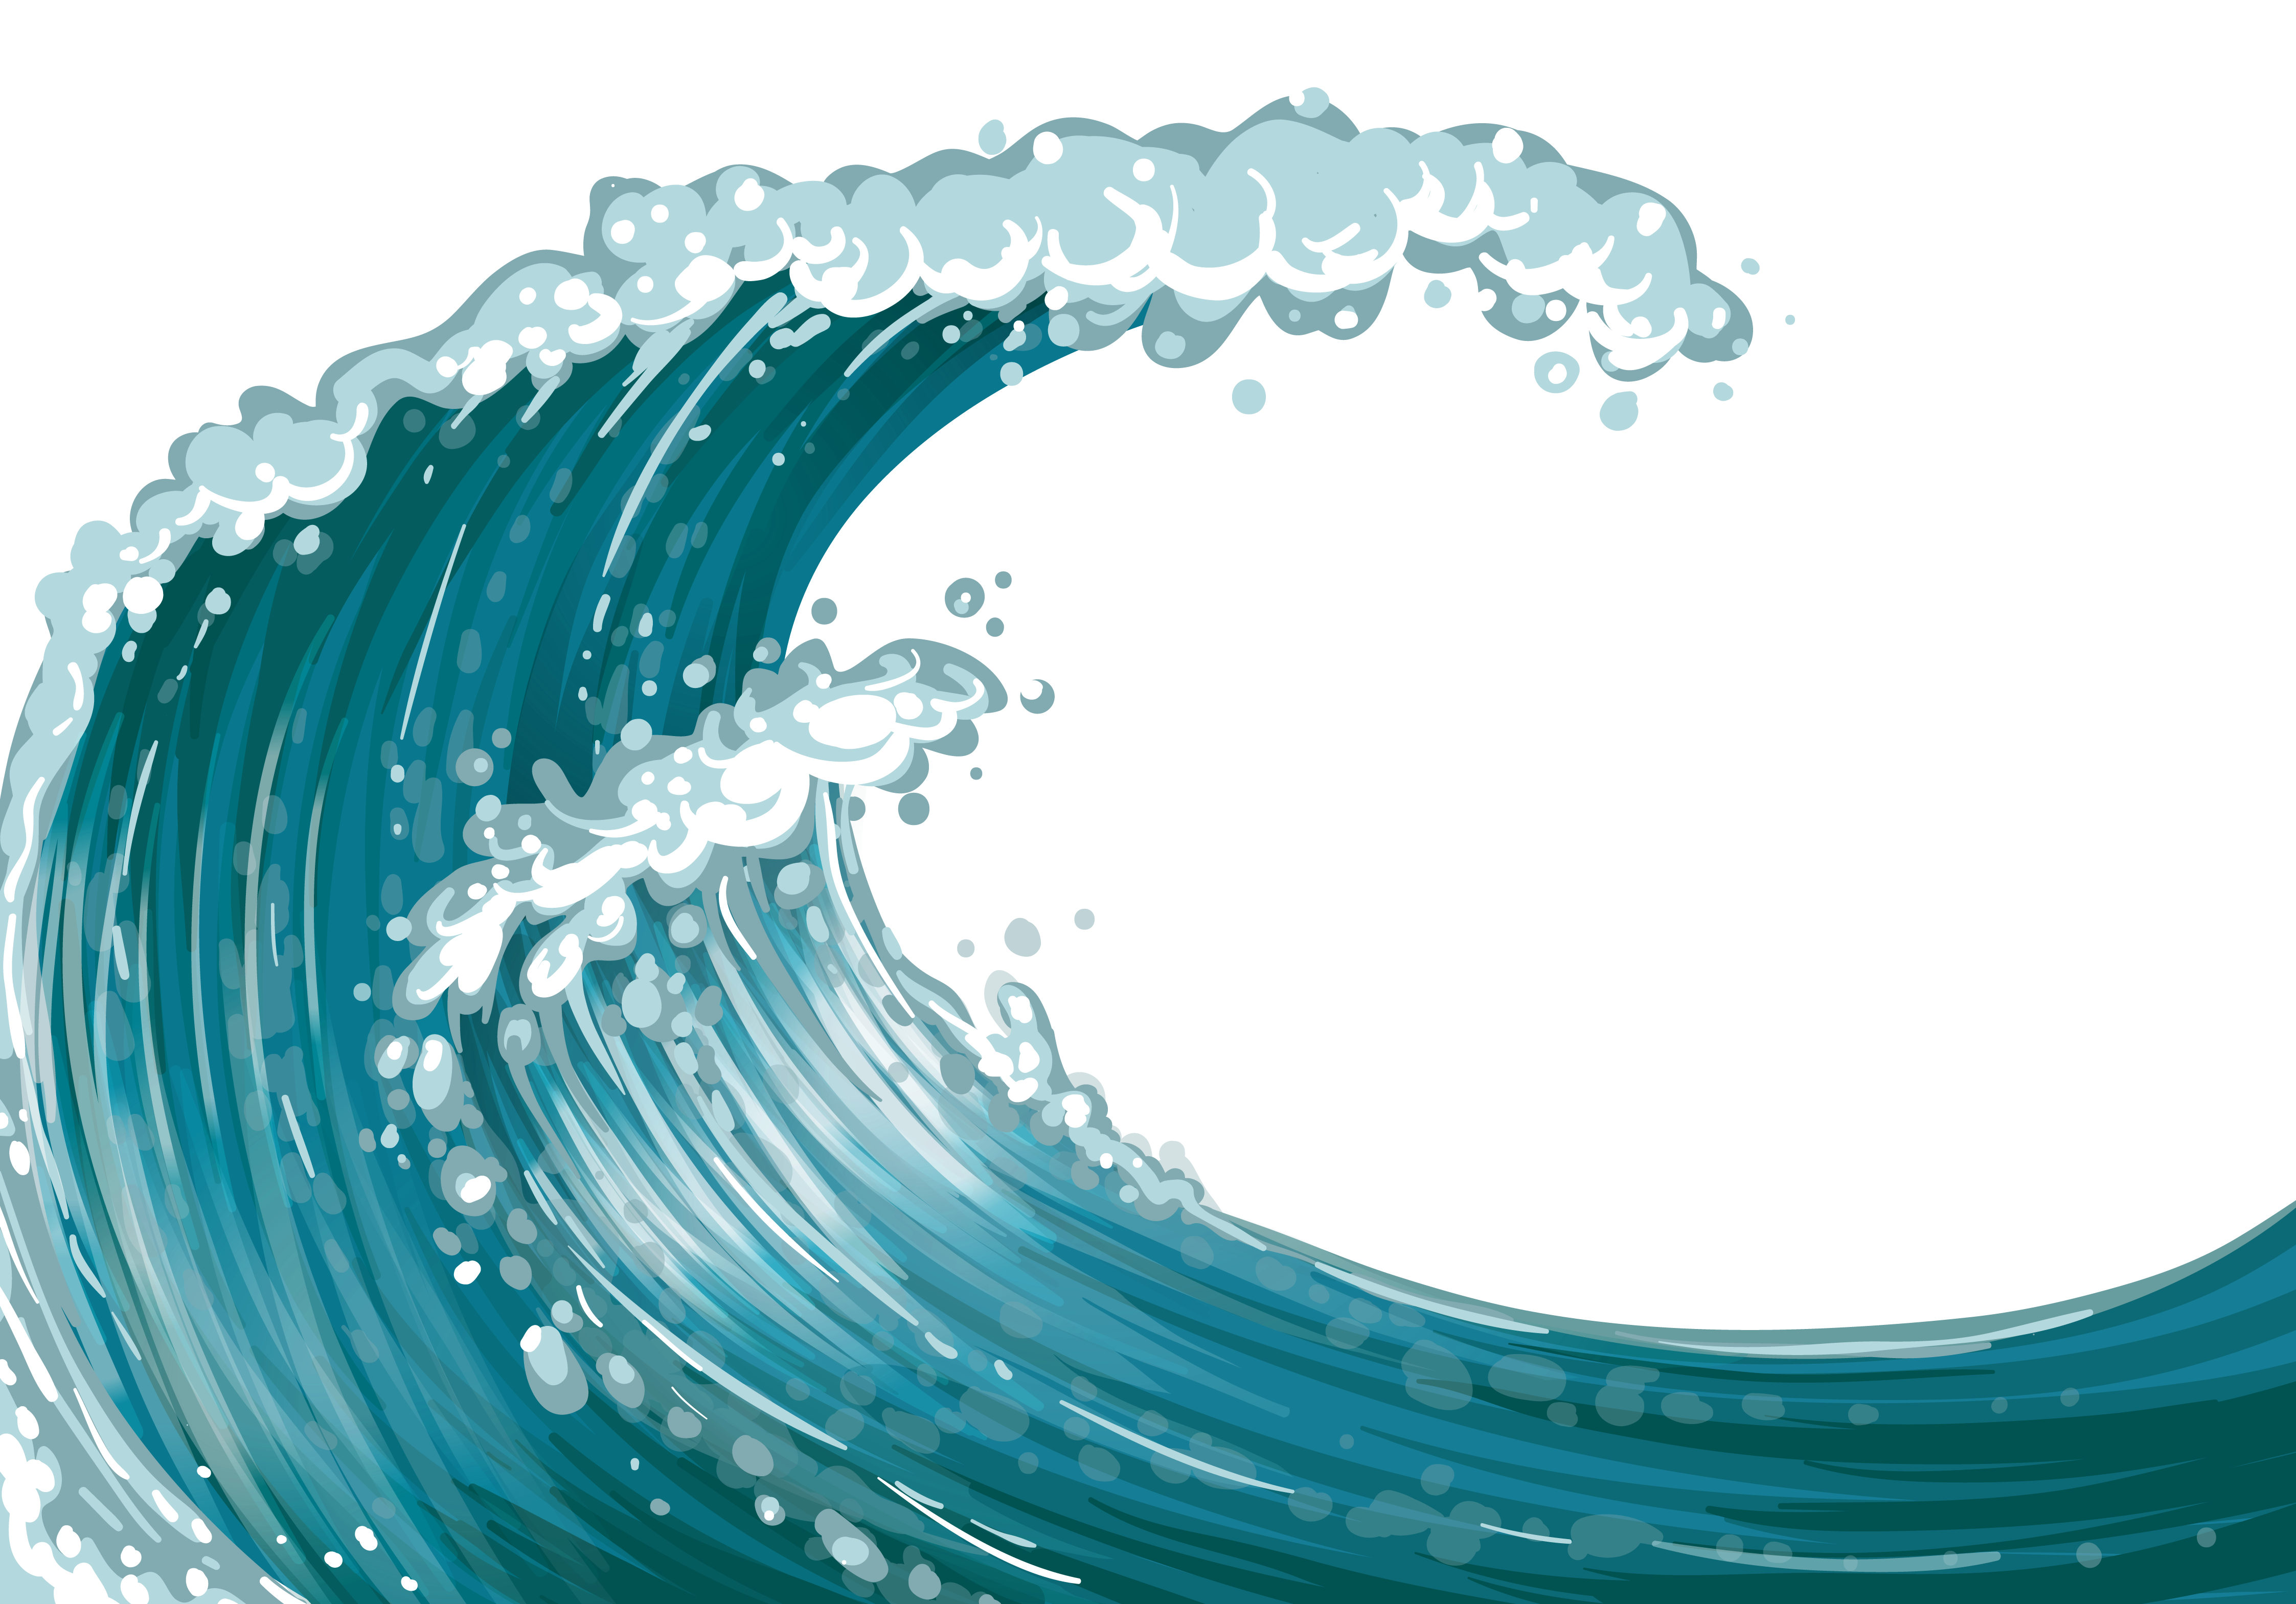 Clipart waves wavy water, Clipart waves wavy water.